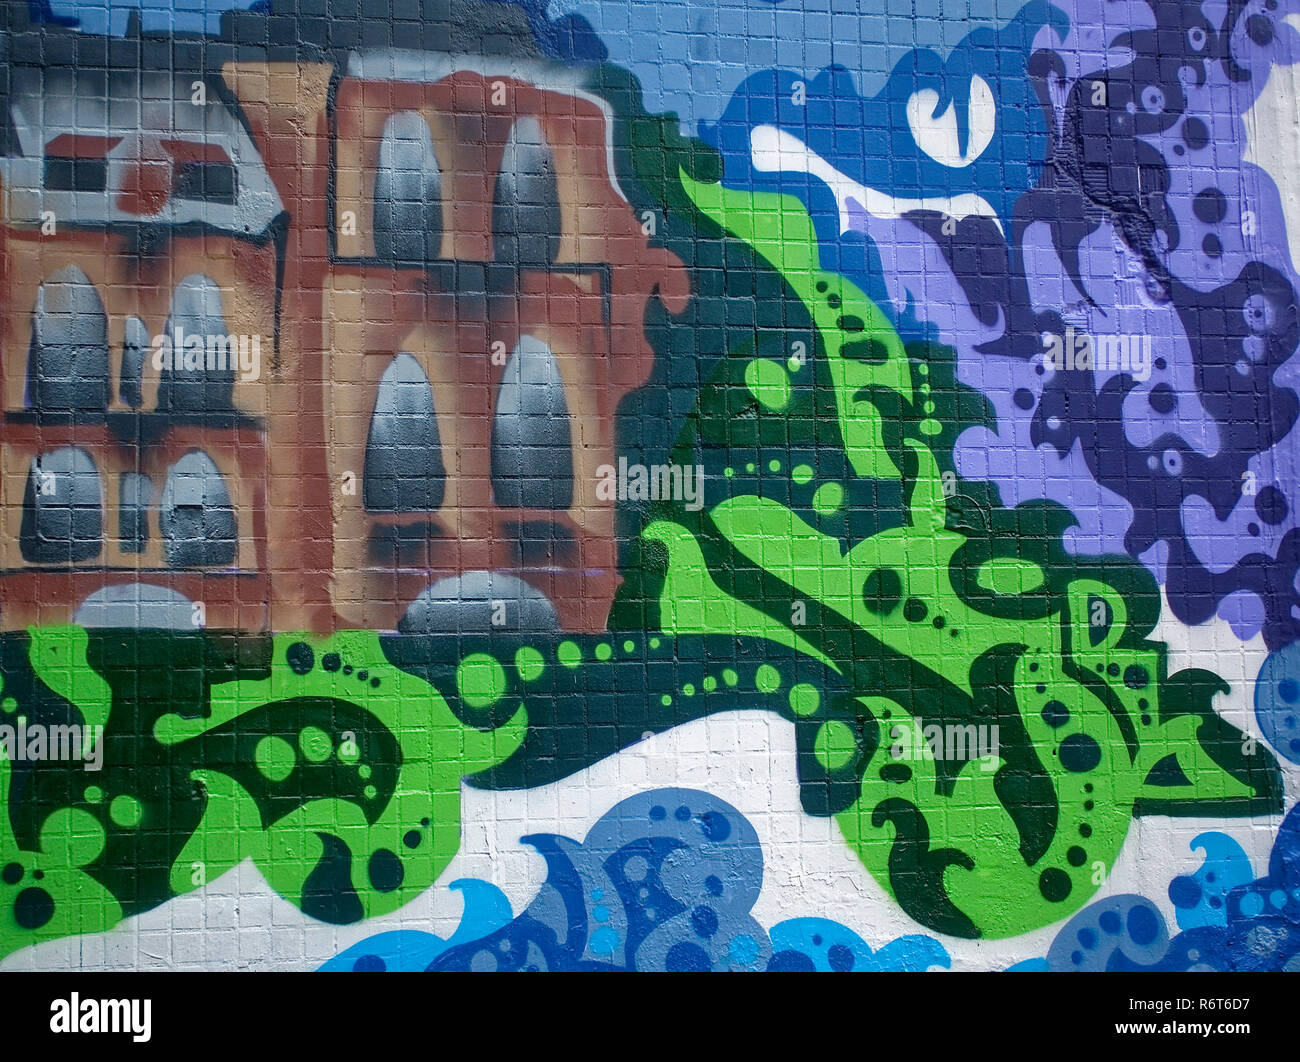 Graffiti on the wall in summer moscow stock image